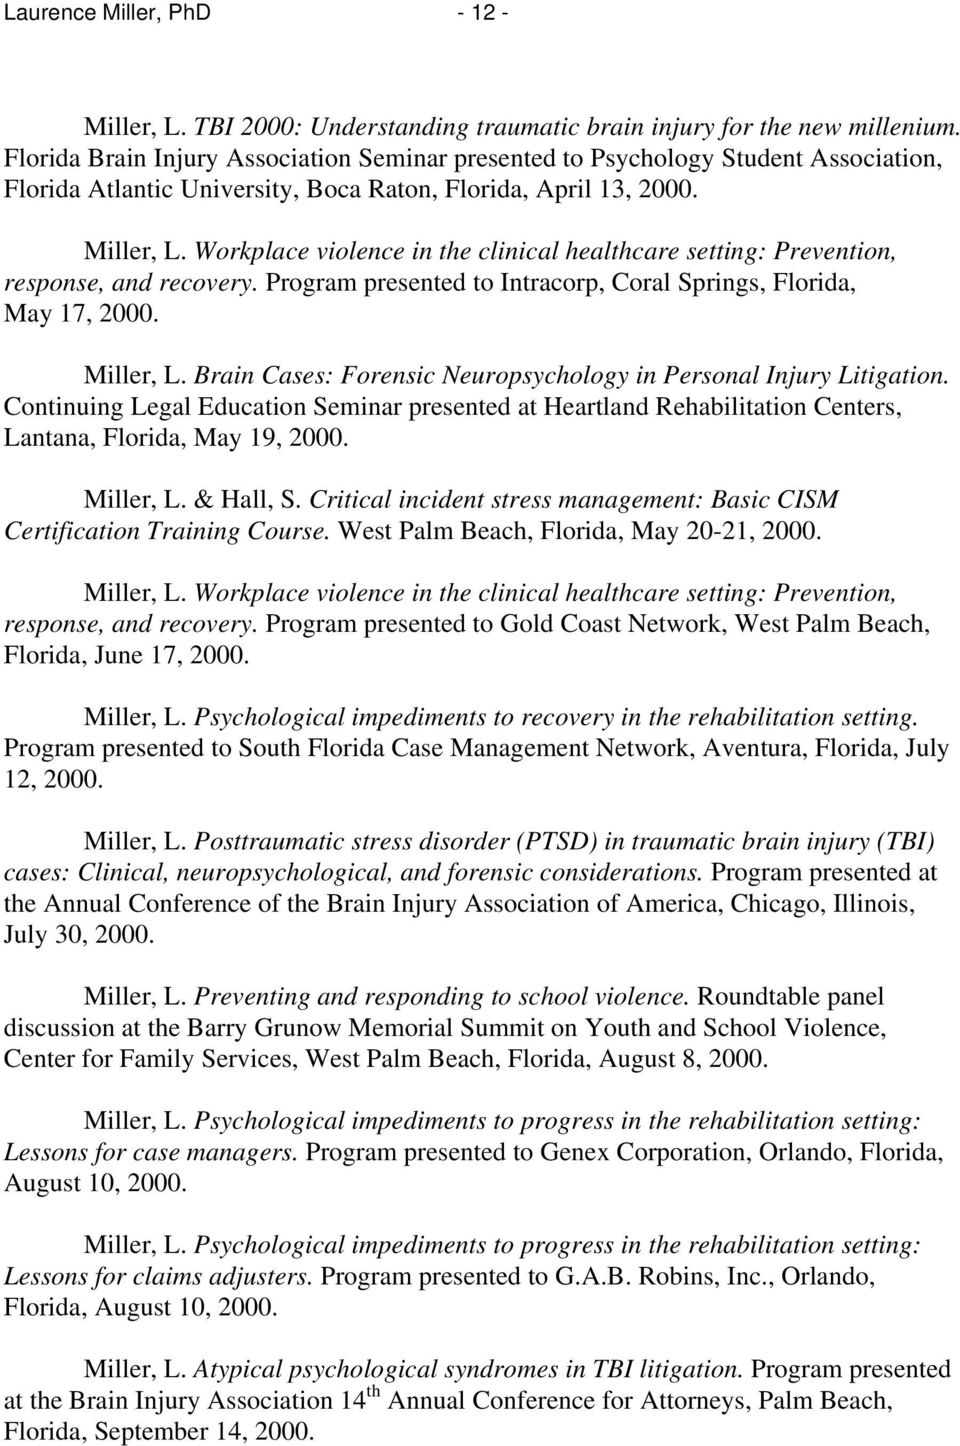 Workplace violence in the clinical healthcare setting: Prevention, response, and recovery. Program presented to Intracorp, Coral Springs, Florida, May 17, 2000. Miller, L.